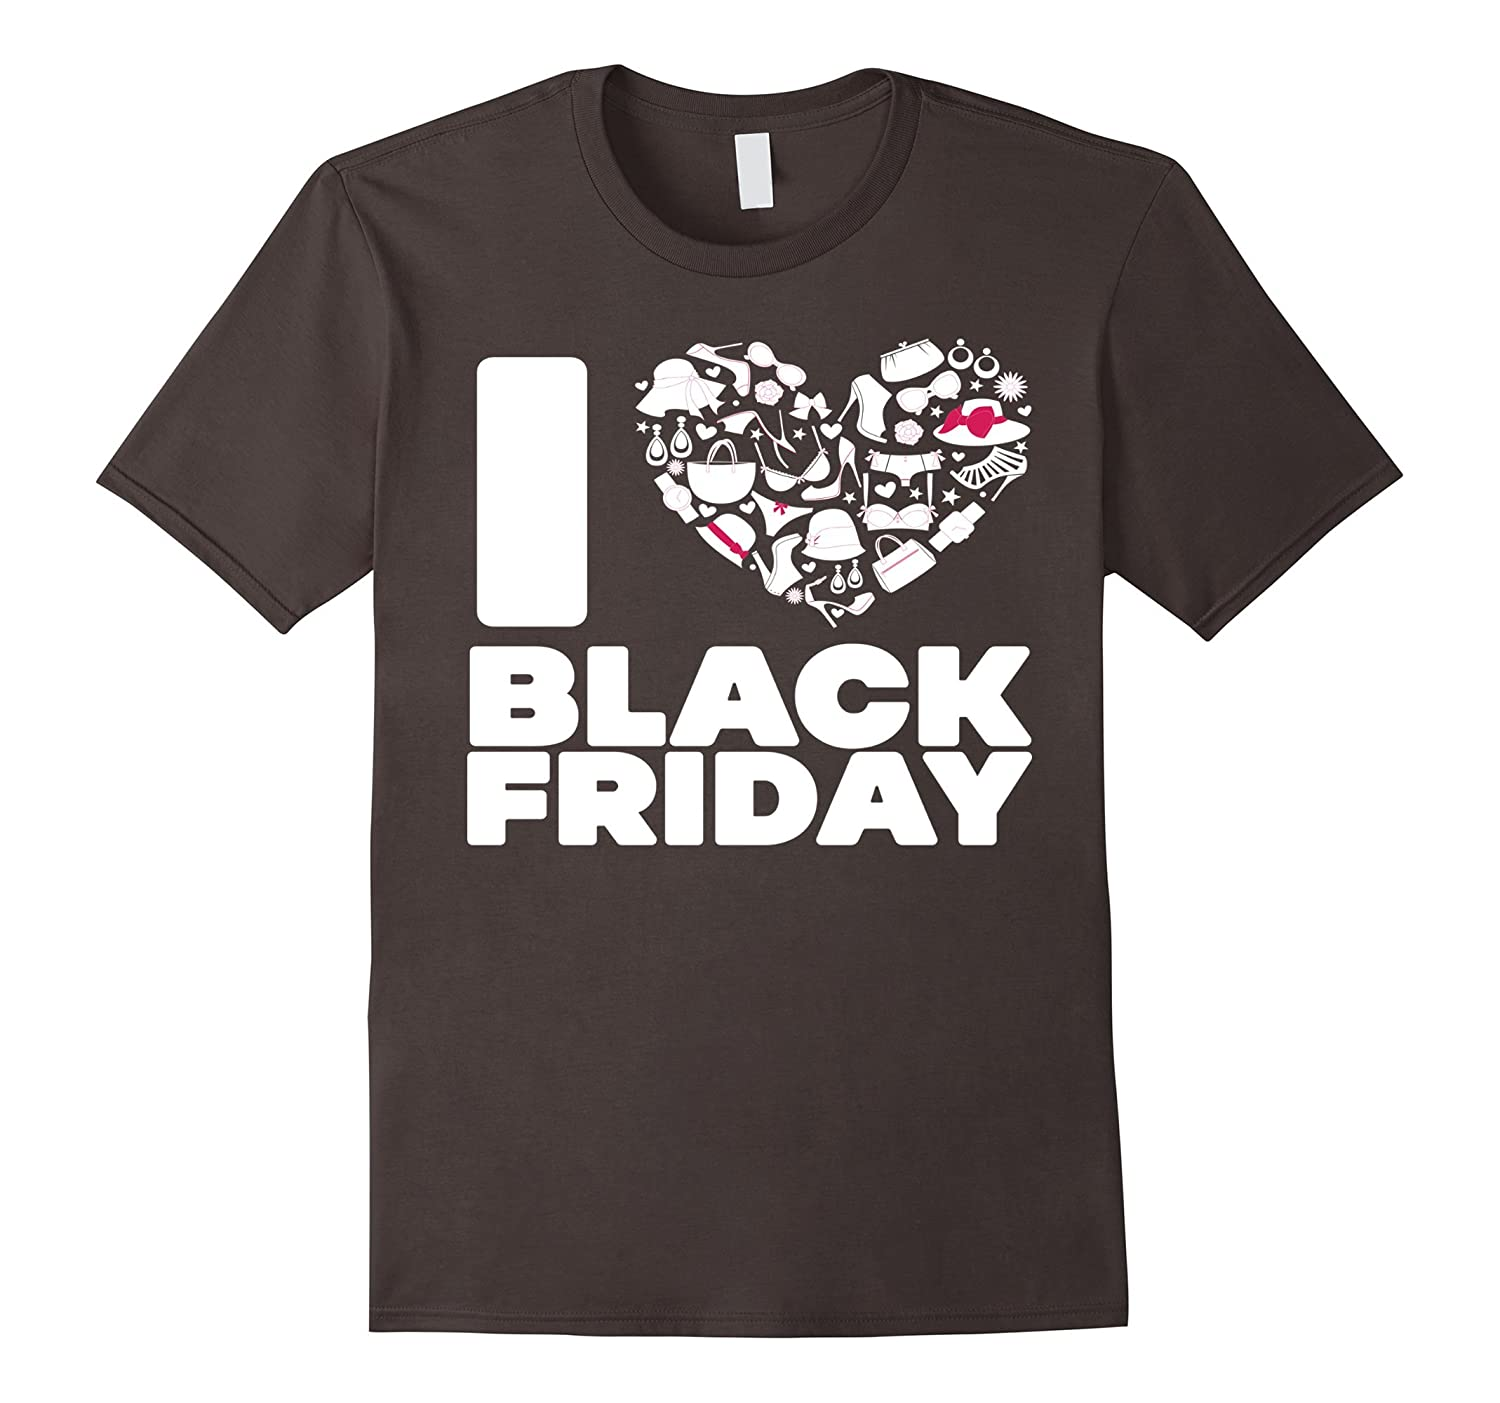 Teenager Posts Black Friday through the years So true lol Find this Pin and more on Black Friday t-shirt ideas by Melissa Neidhardt Hasenauer. Last year we had Black Friday week. Black Friday month is .